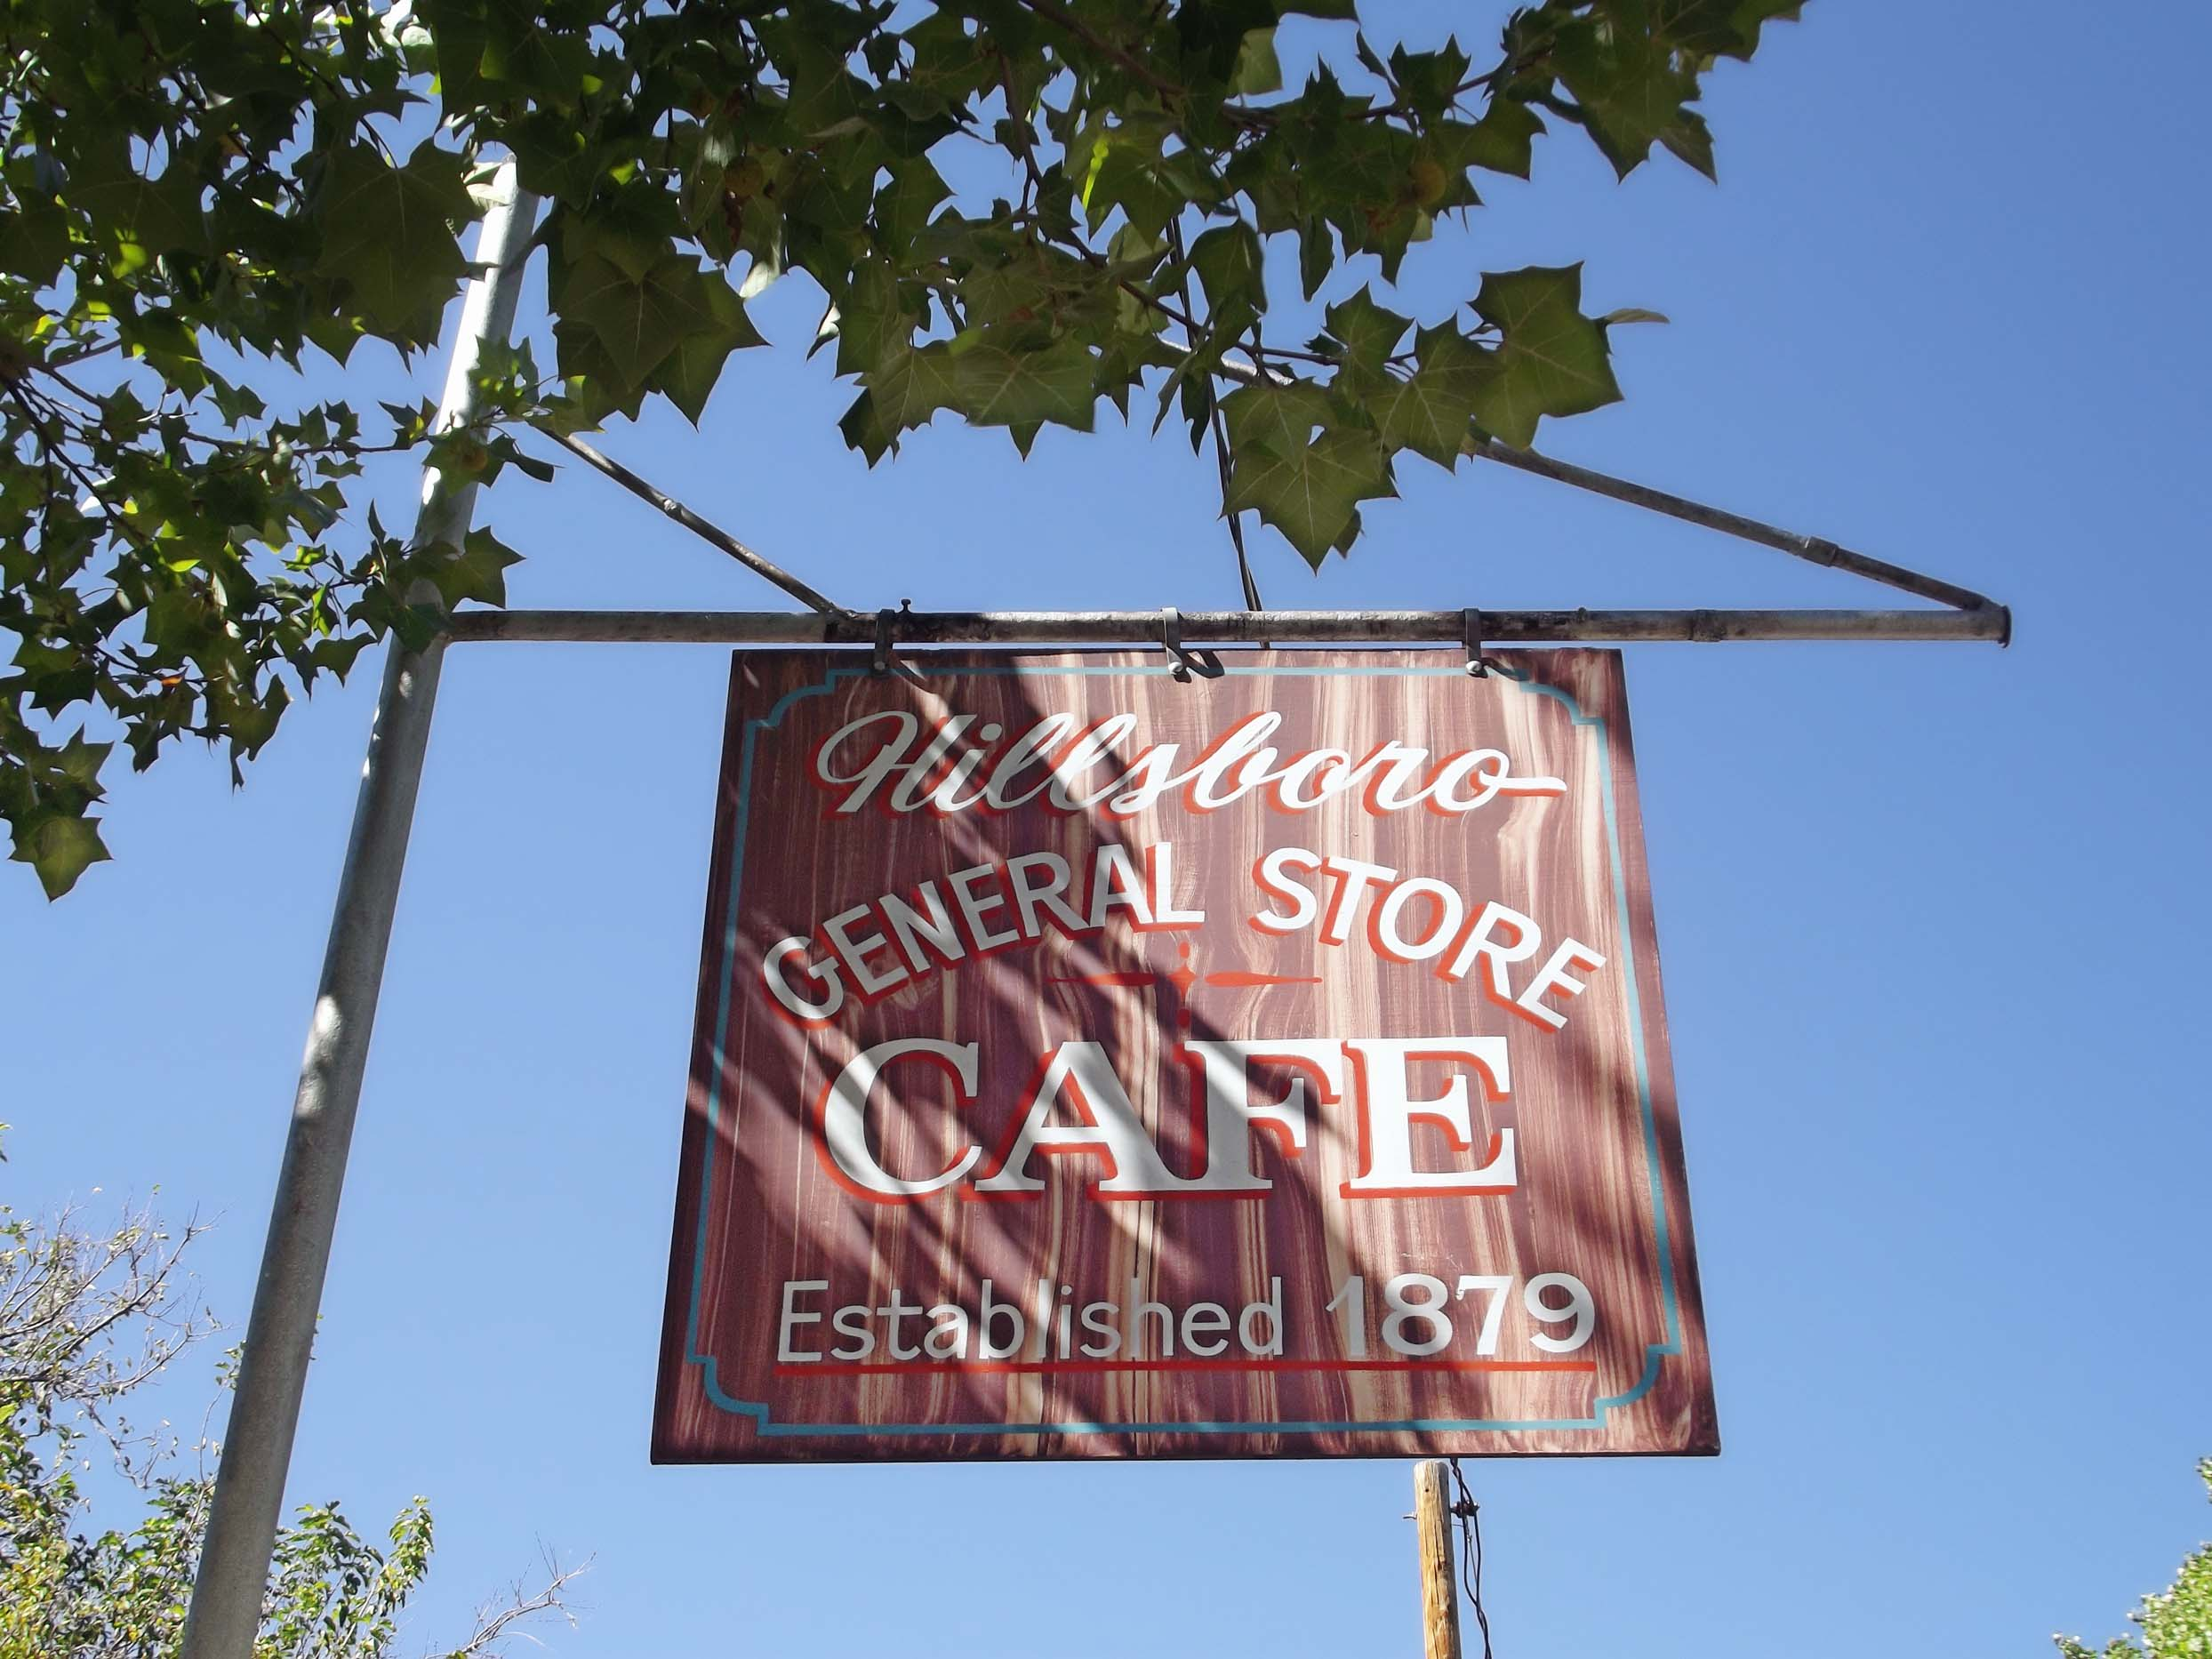 Sign advertising general store and cafe